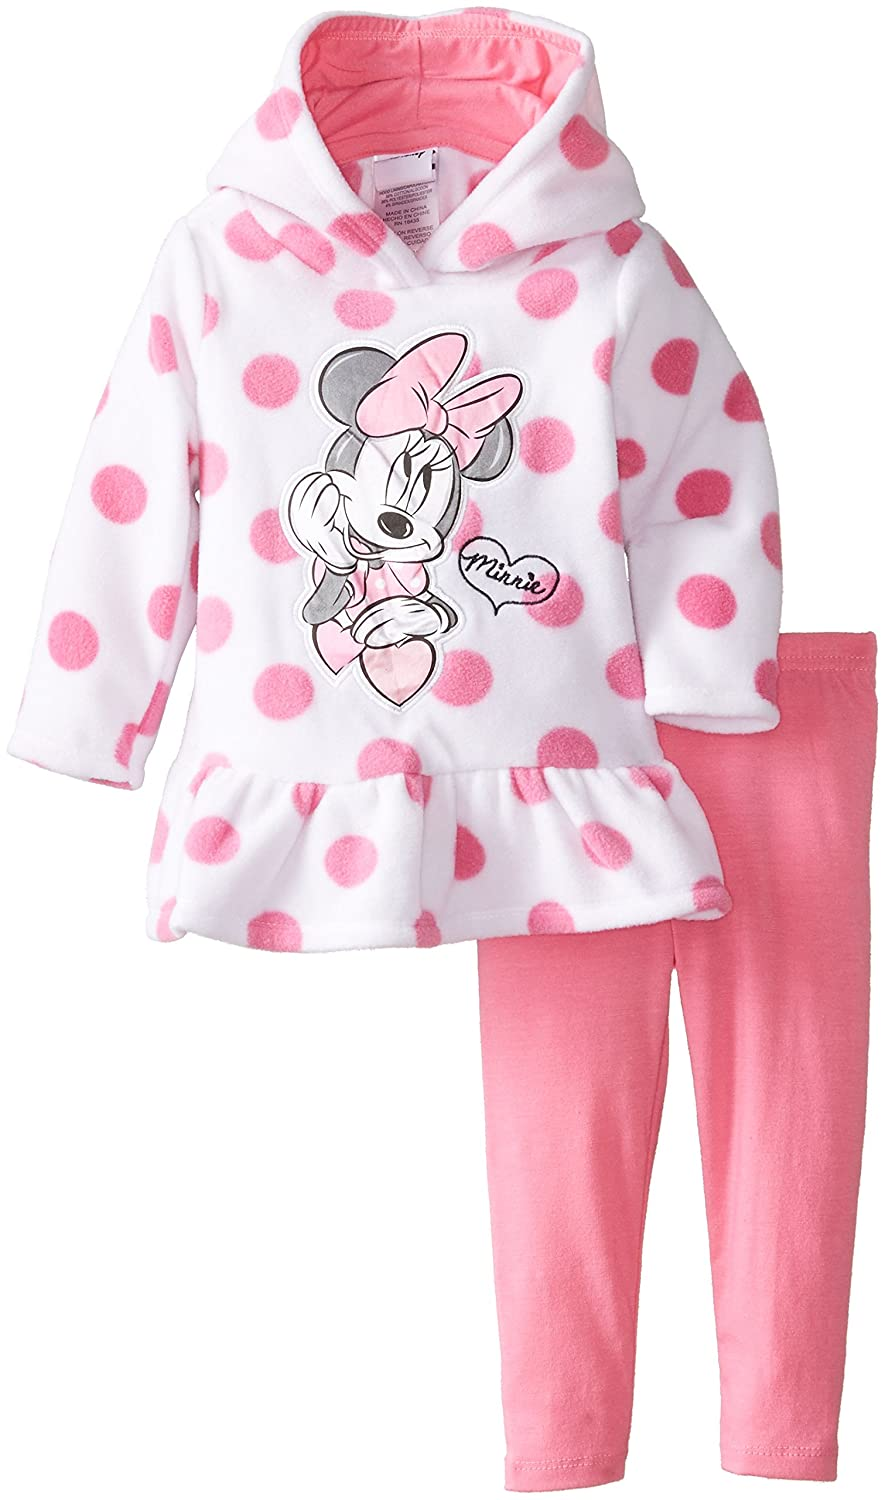 愛用 Disney Baby Girls ' Months Minnieマウス2 Piece Girls Polka Dotフリースセット Piece 12 Months Pink Medium B00K0A77CE, アイスケーキ専門店 リタティーノ:06dcba36 --- a0267596.xsph.ru